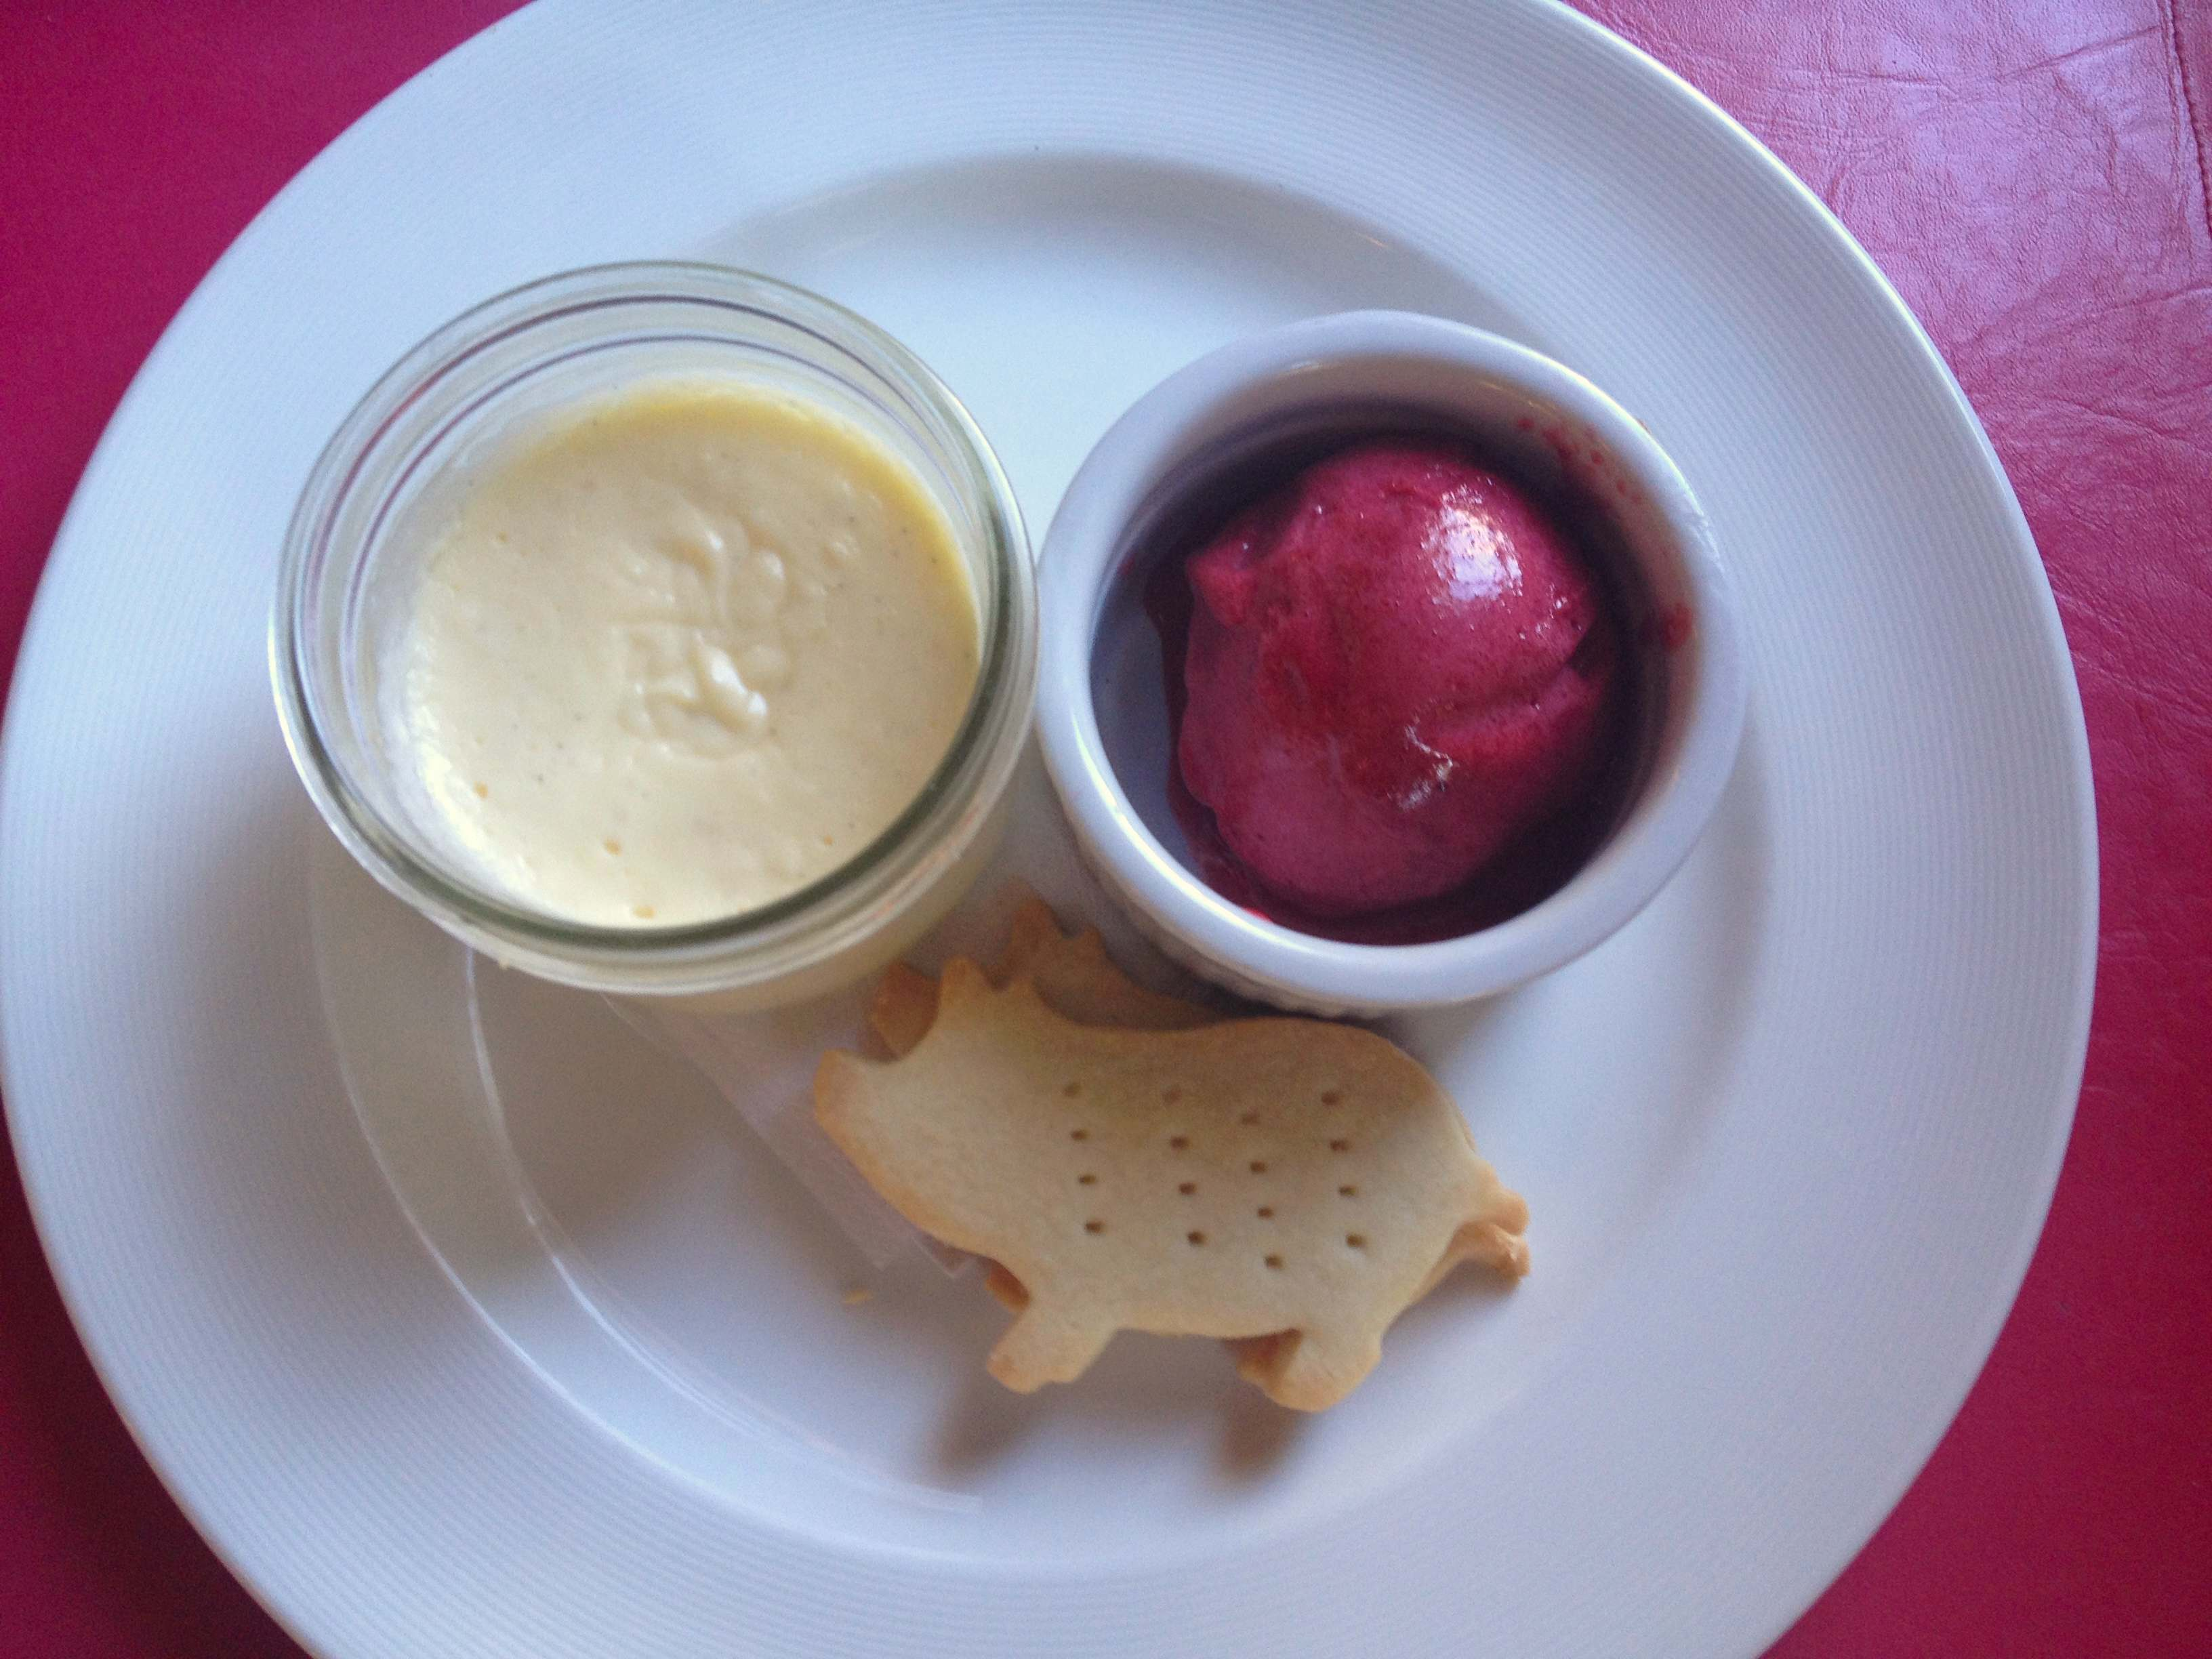 Goat cheese cheesecake with sour cherry sorbet and piggie shortbread cookies, Peasant Cookery. (Photo by Robin Summerfield.)